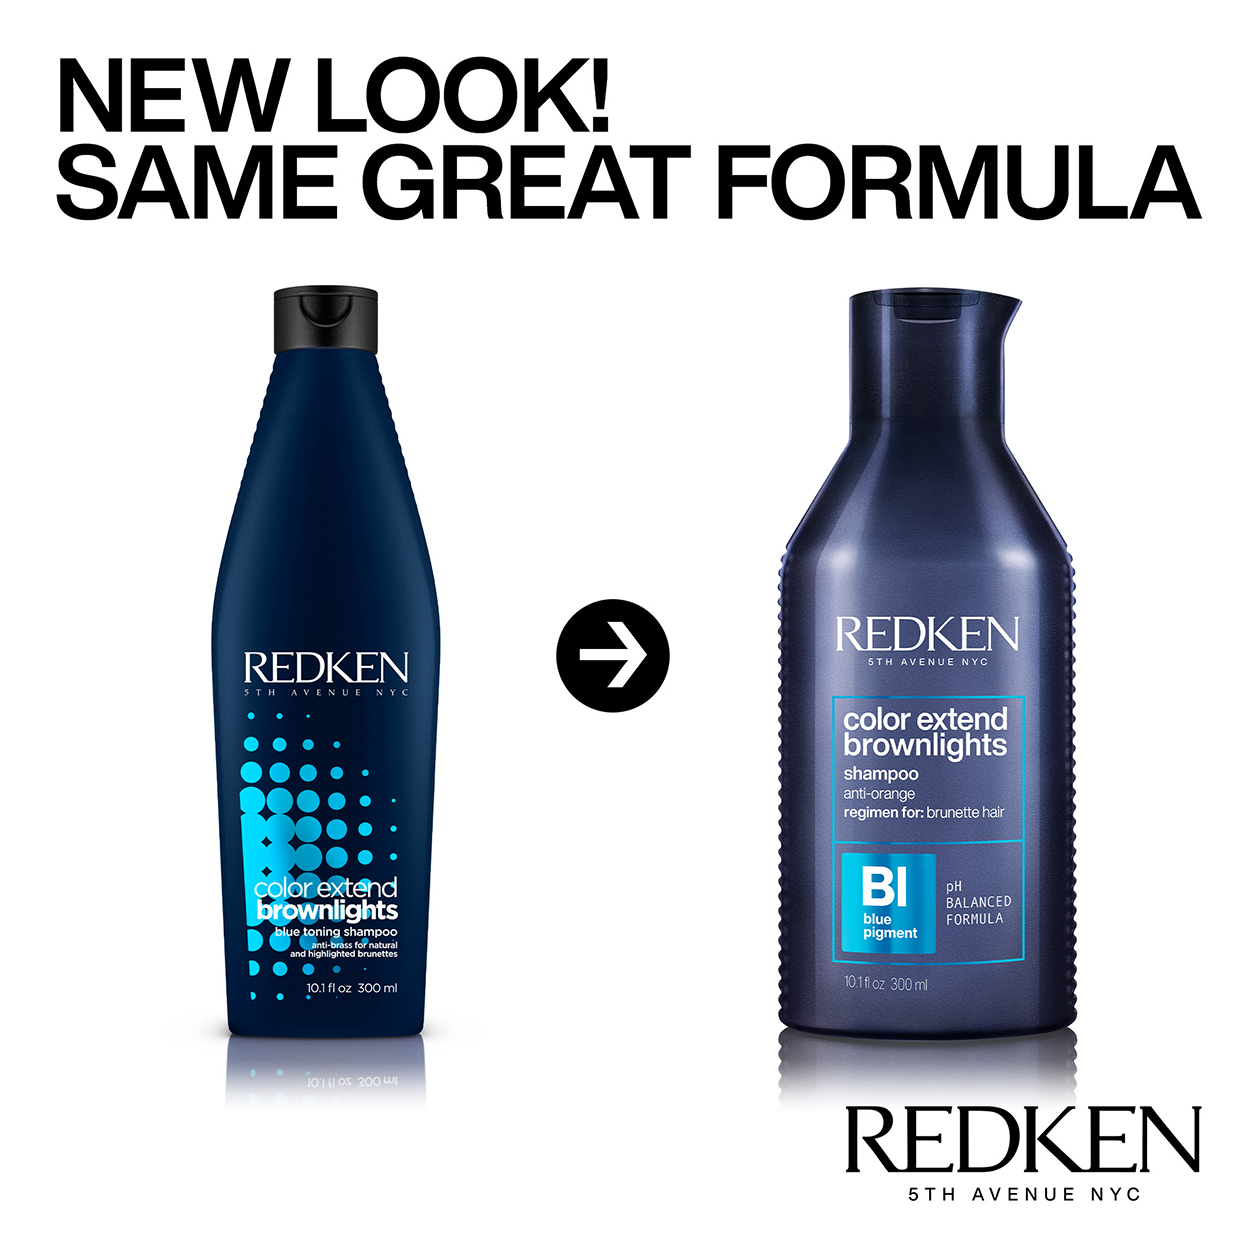 Redken-2020-Color-Extend-Brownlights-Shampoo-This-To-That-Retail